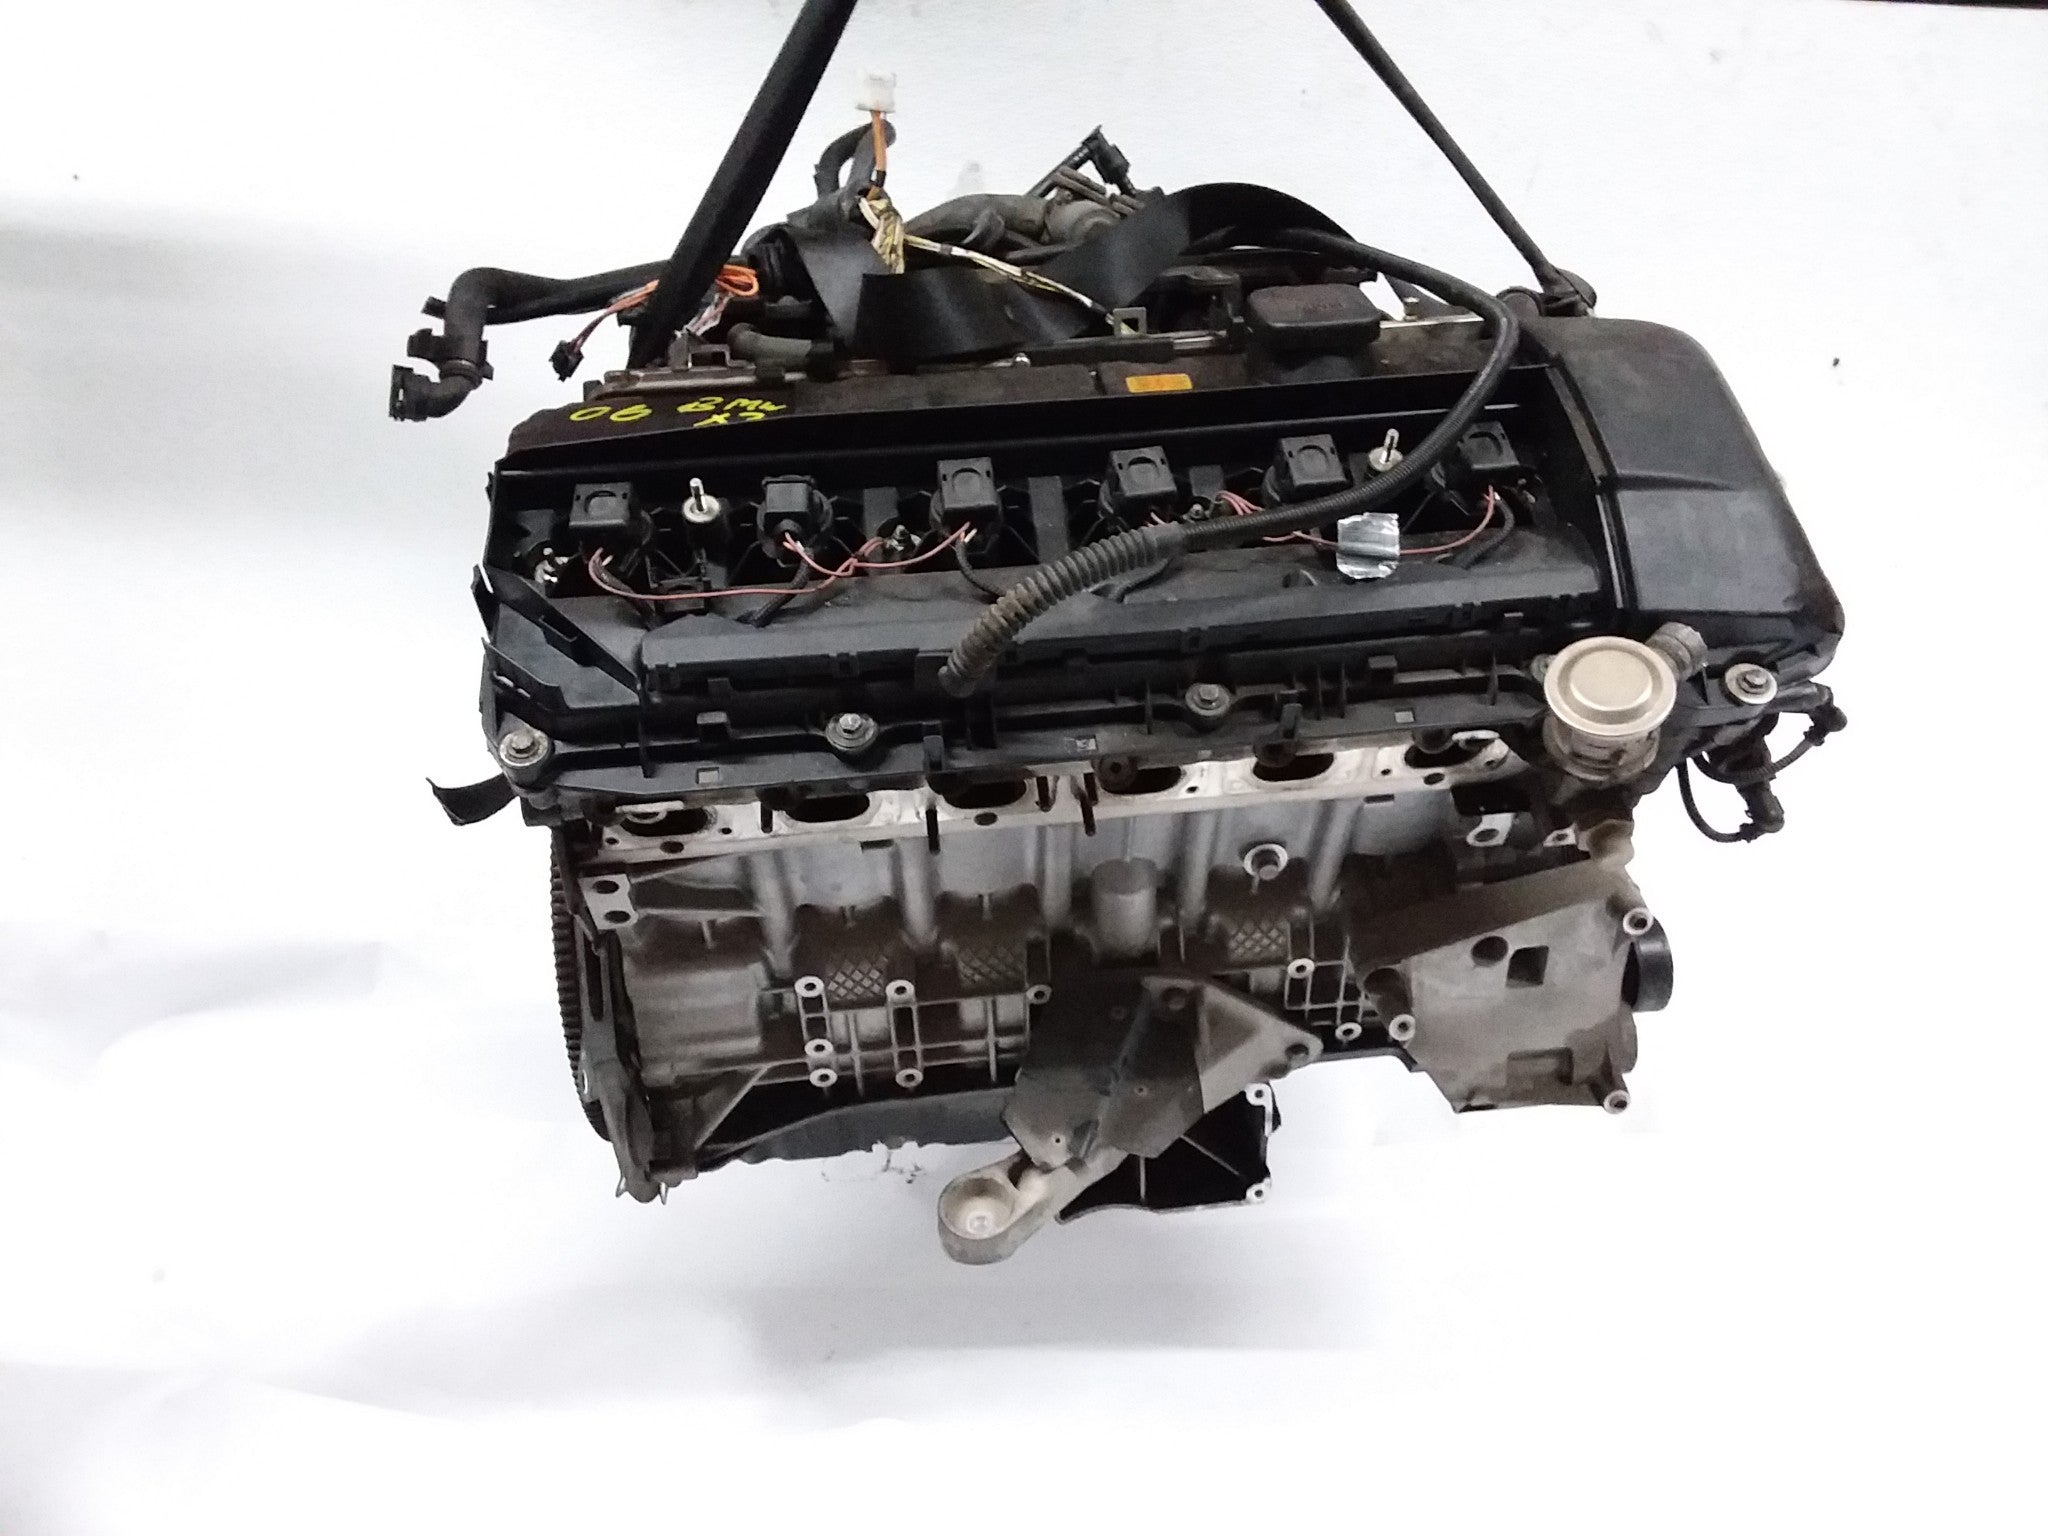 2004 2005 2006 04 05 06 BMW X3 3.0L ENGINE MOTOR ASSEMBLY - Click Receive Auto Parts